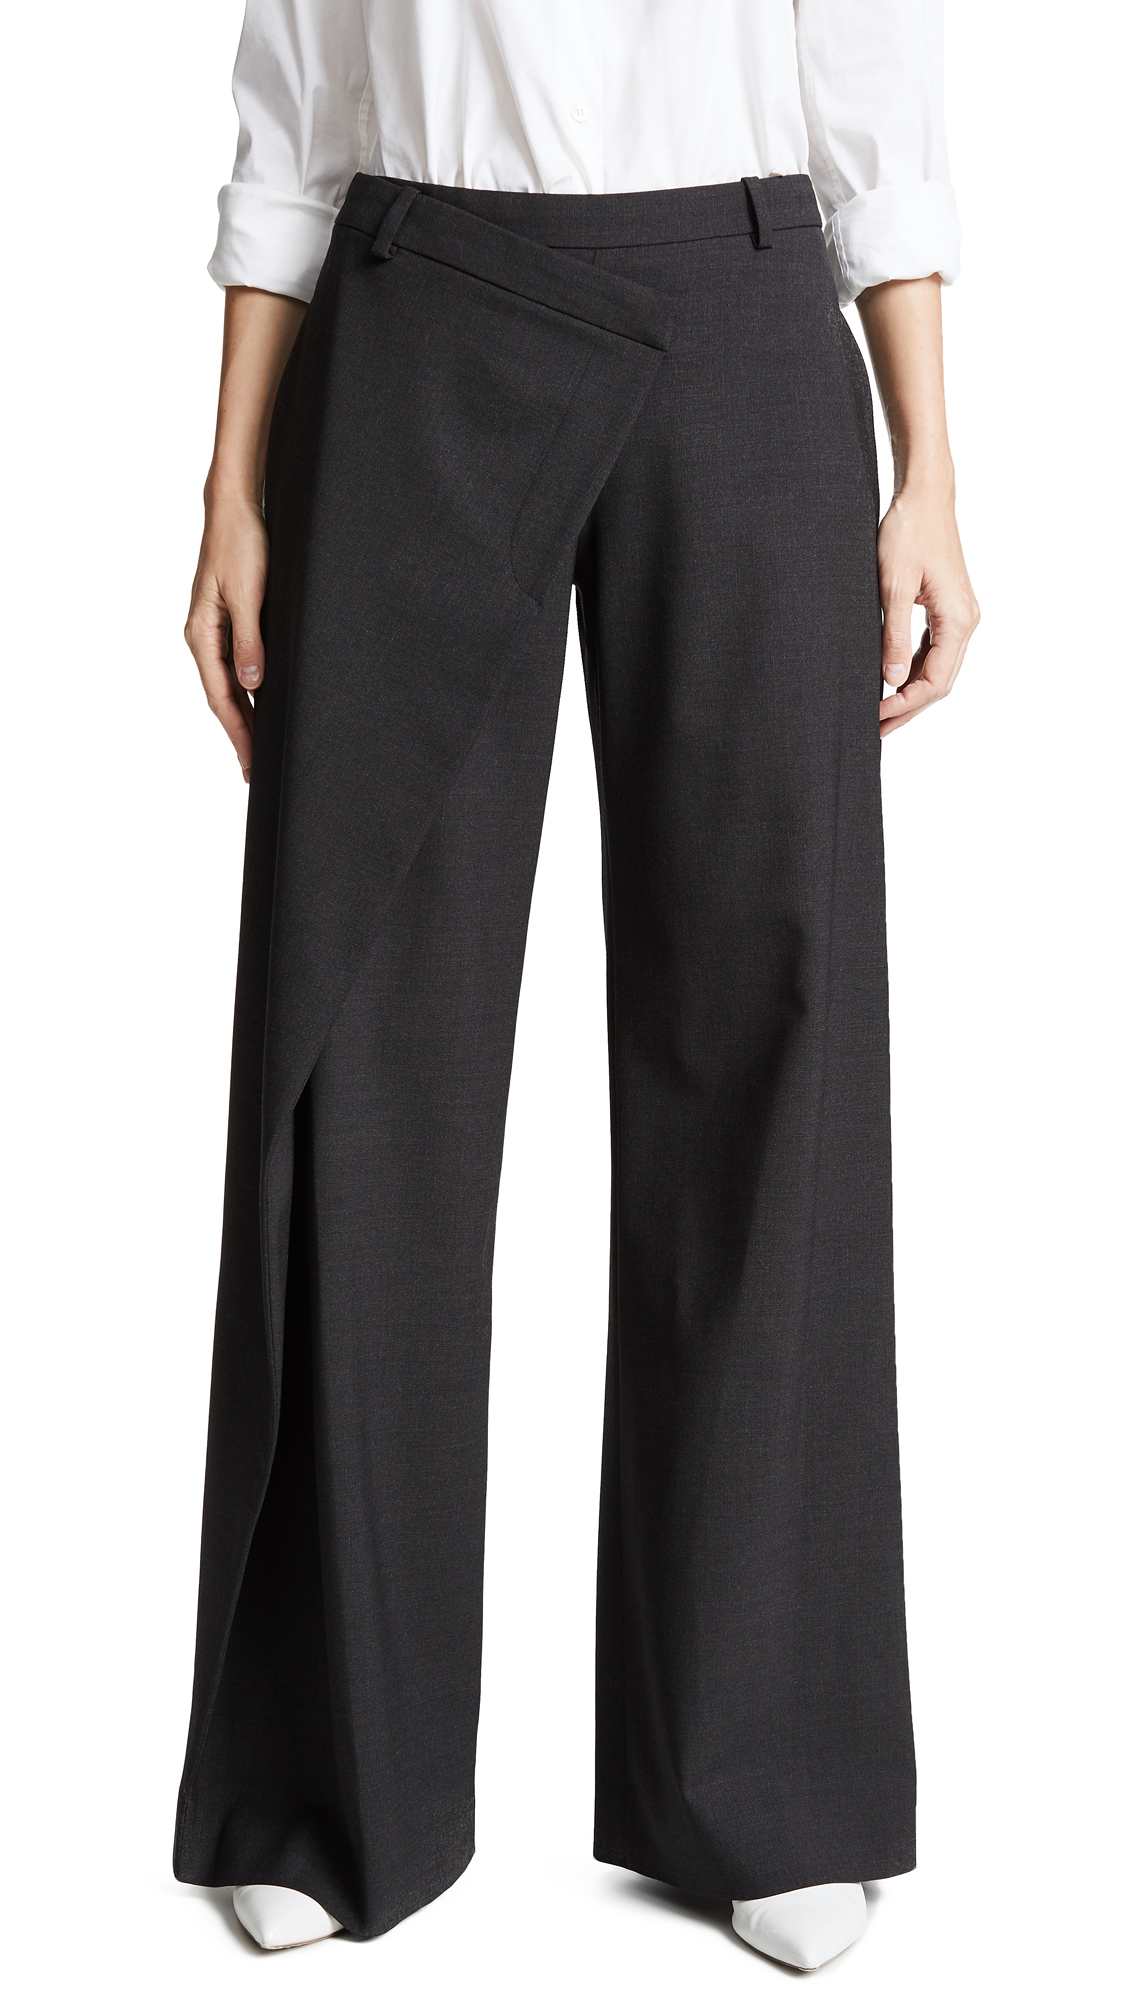 Asymmetrical Trousers With Pleats in Black